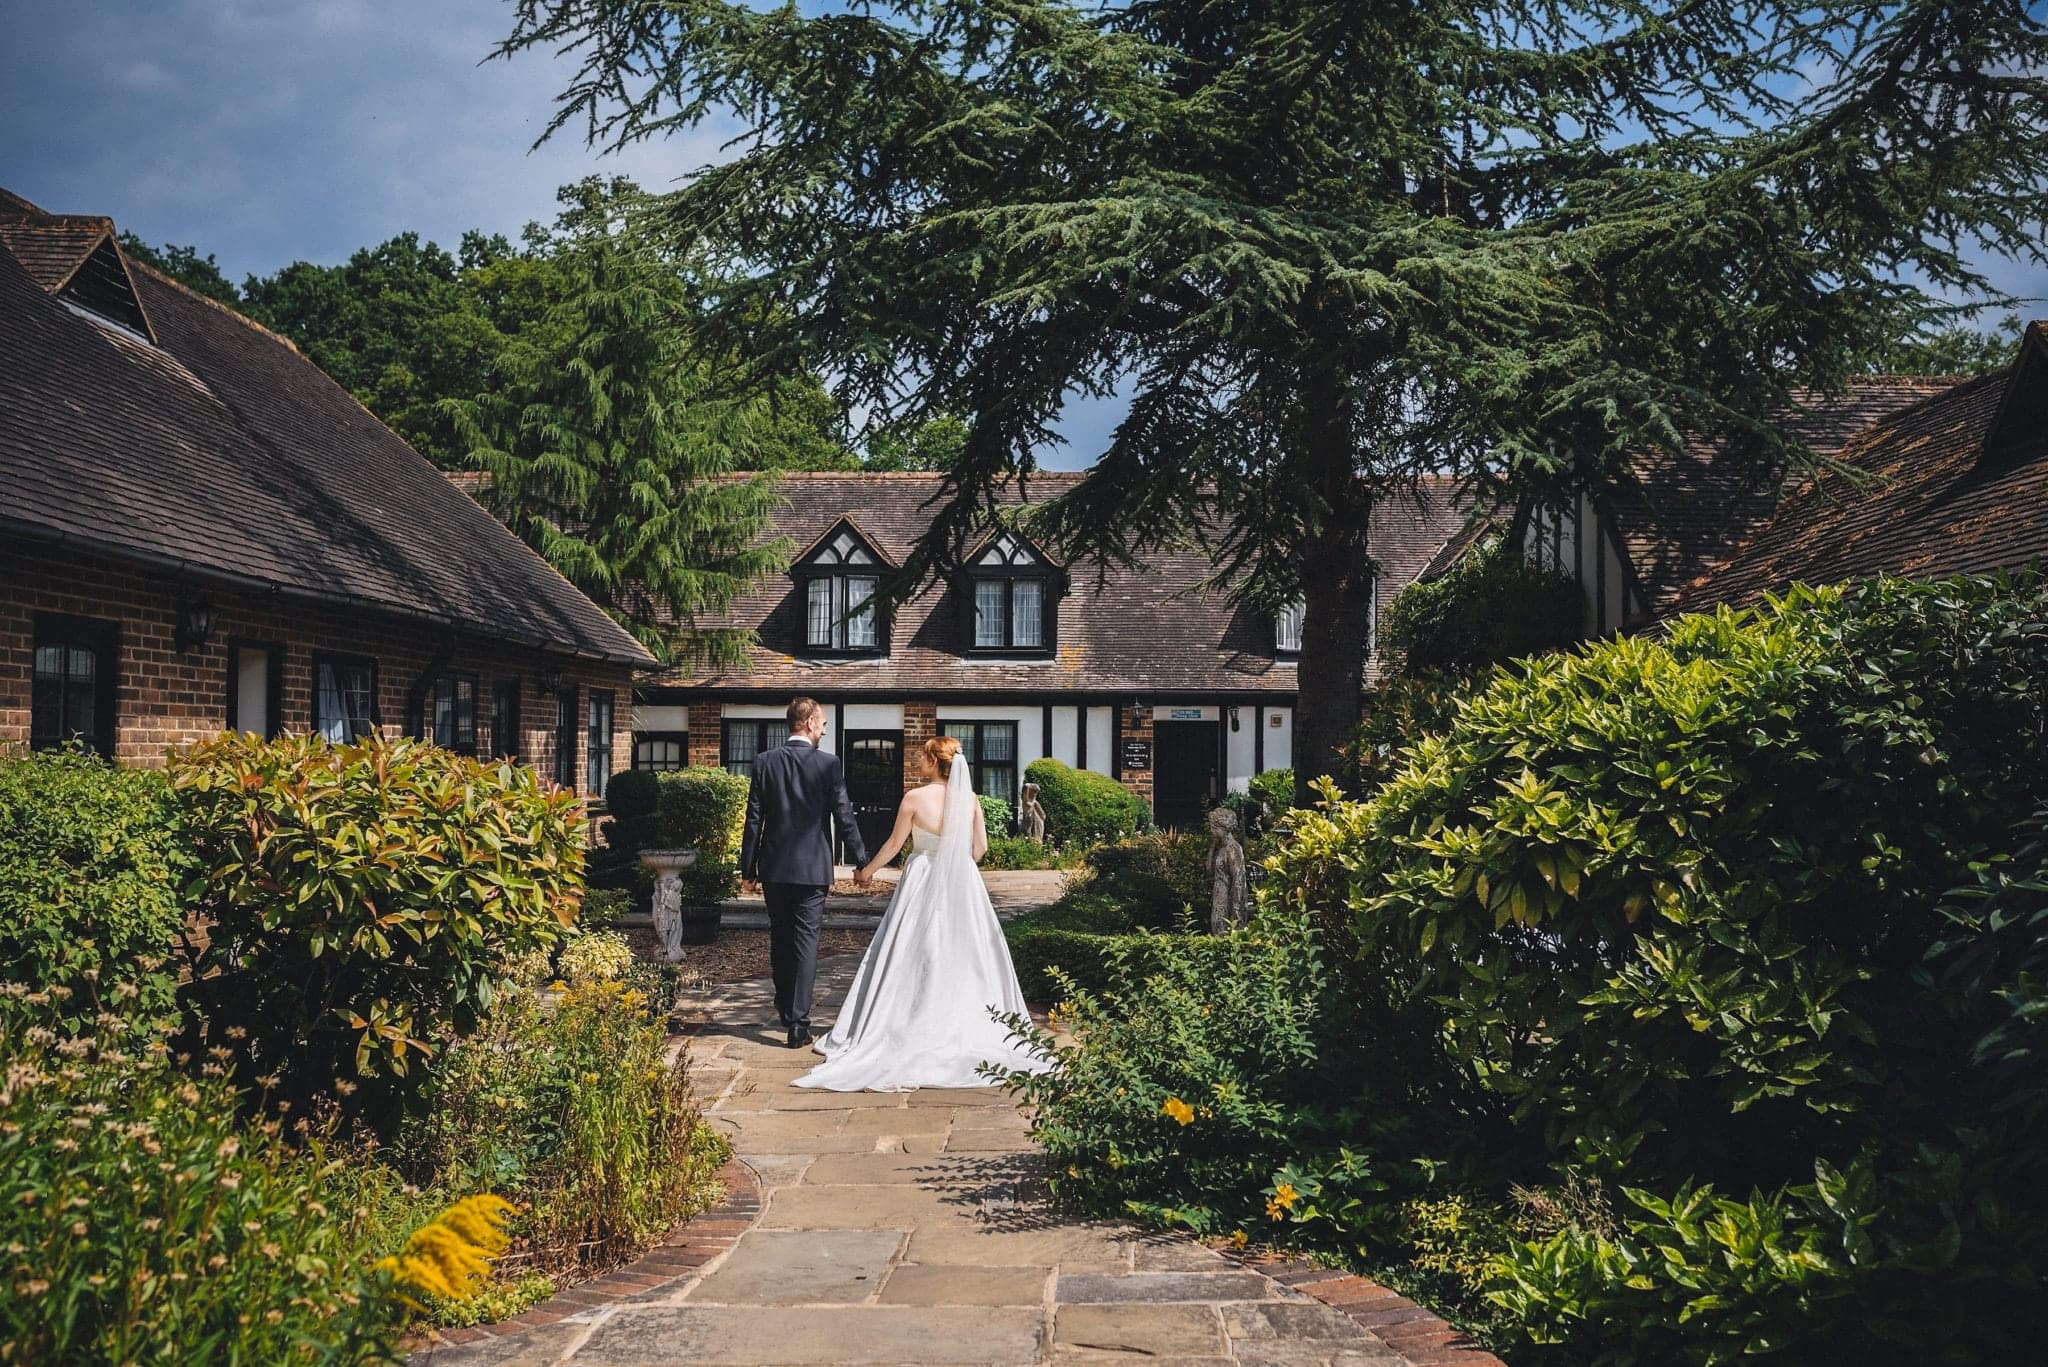 Bride and groom walking at their Joyful Intimate Hever Hotel Wedding